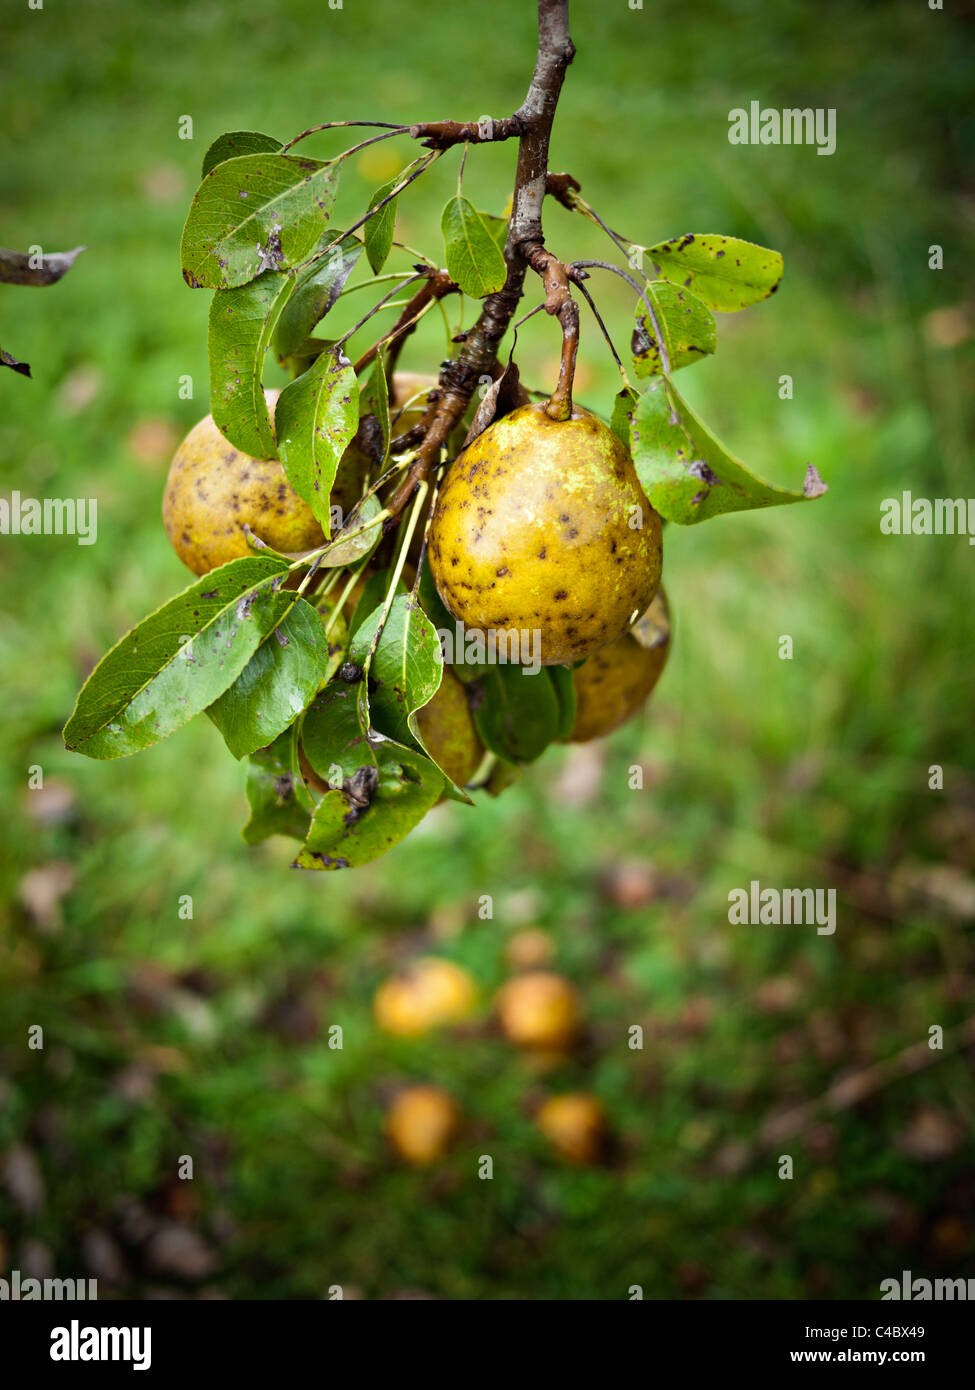 Organically grown pears on tree Stock Photo